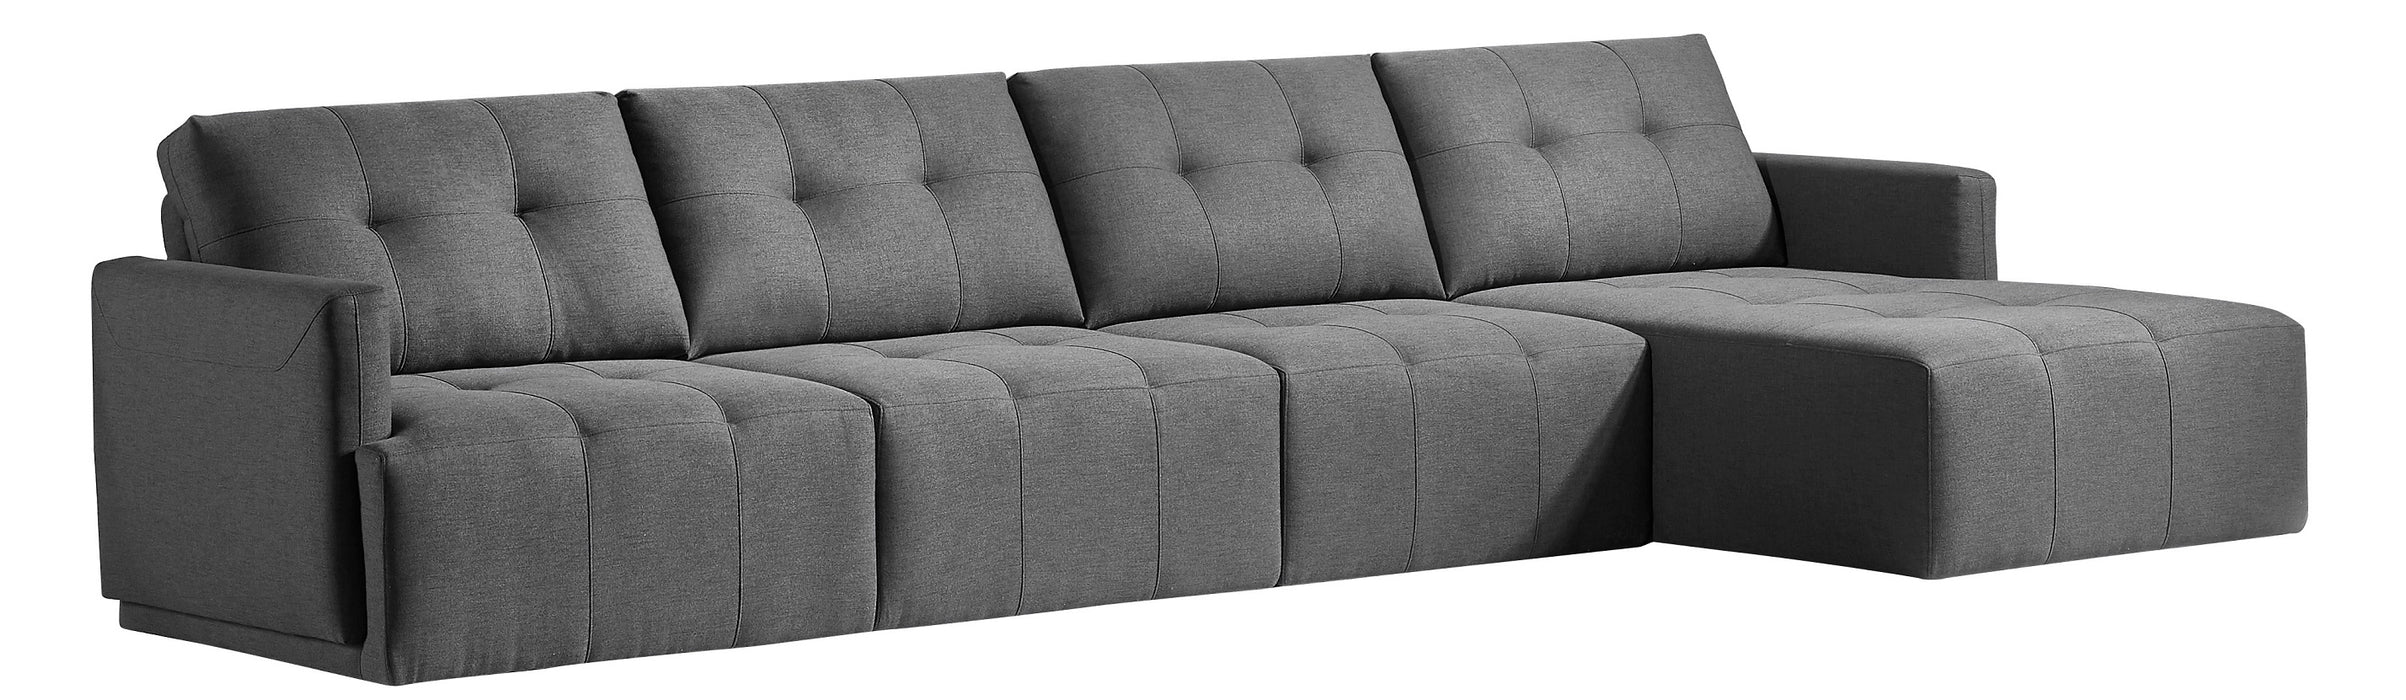 New Classic Furniture | Living Sectional in New Jersey, NJ 6399